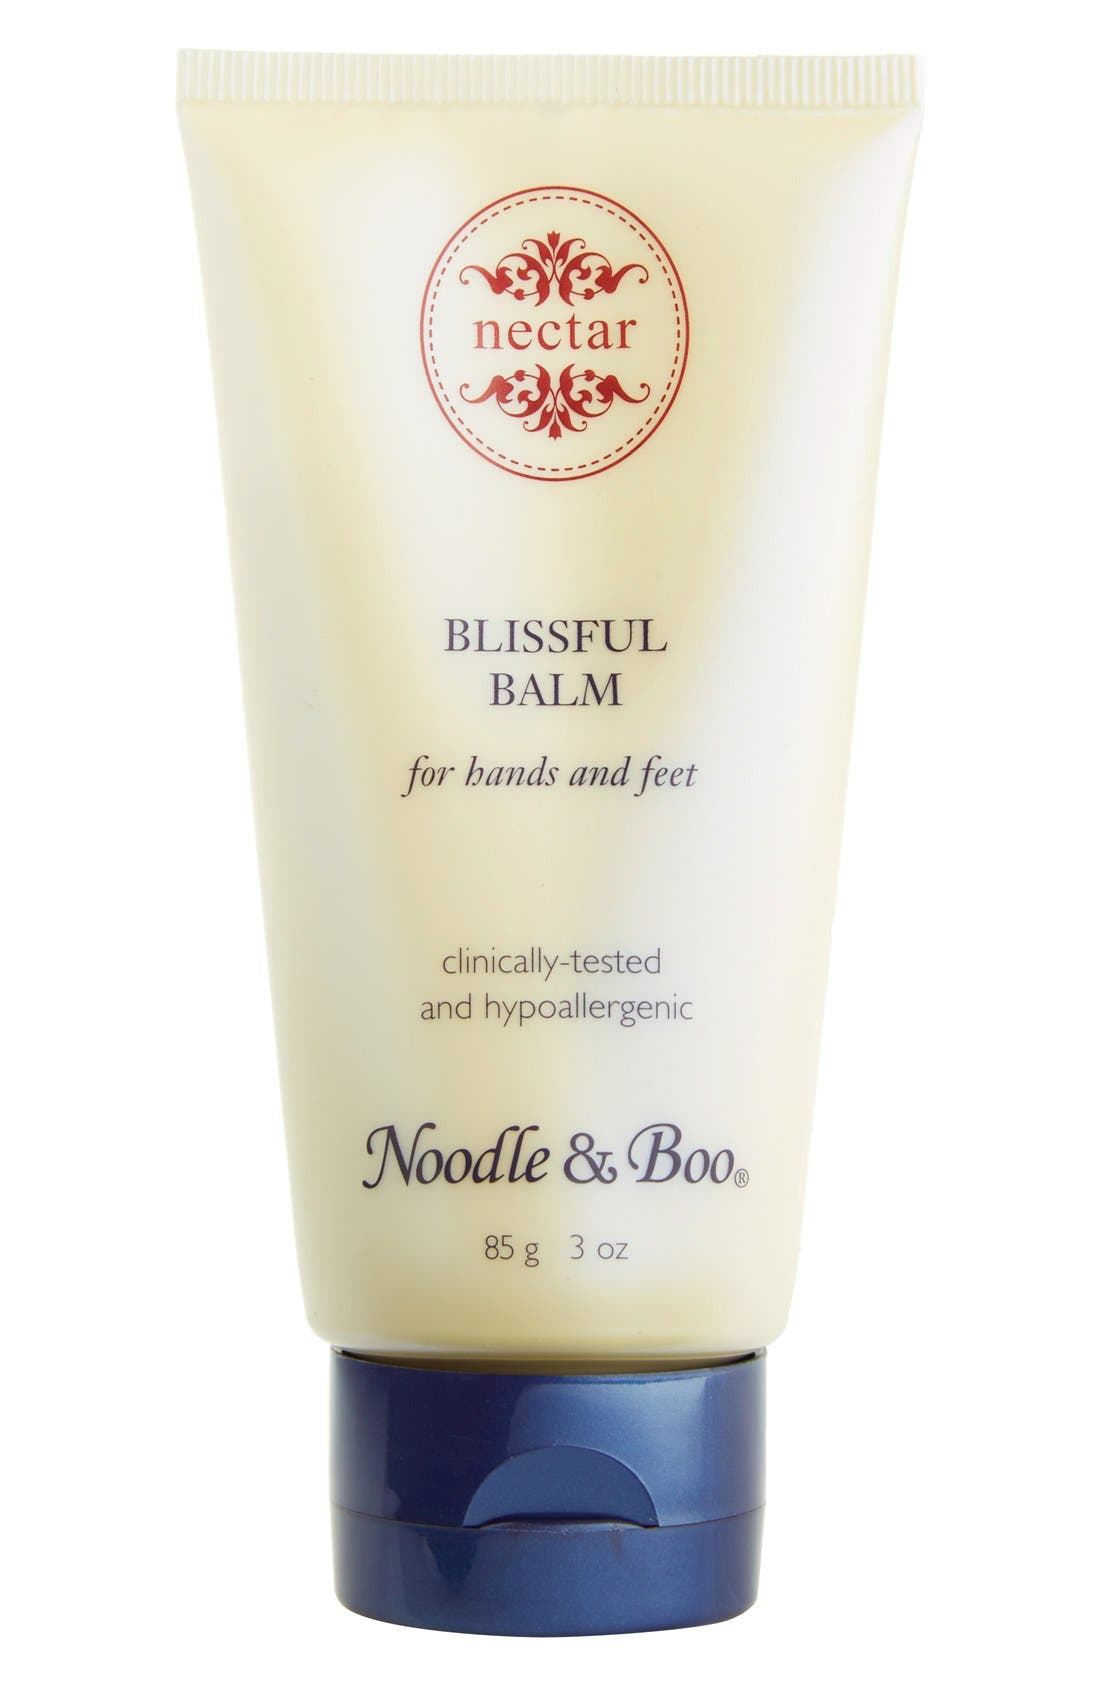 Noodle & Boo 'nectar - Blissful' Balm